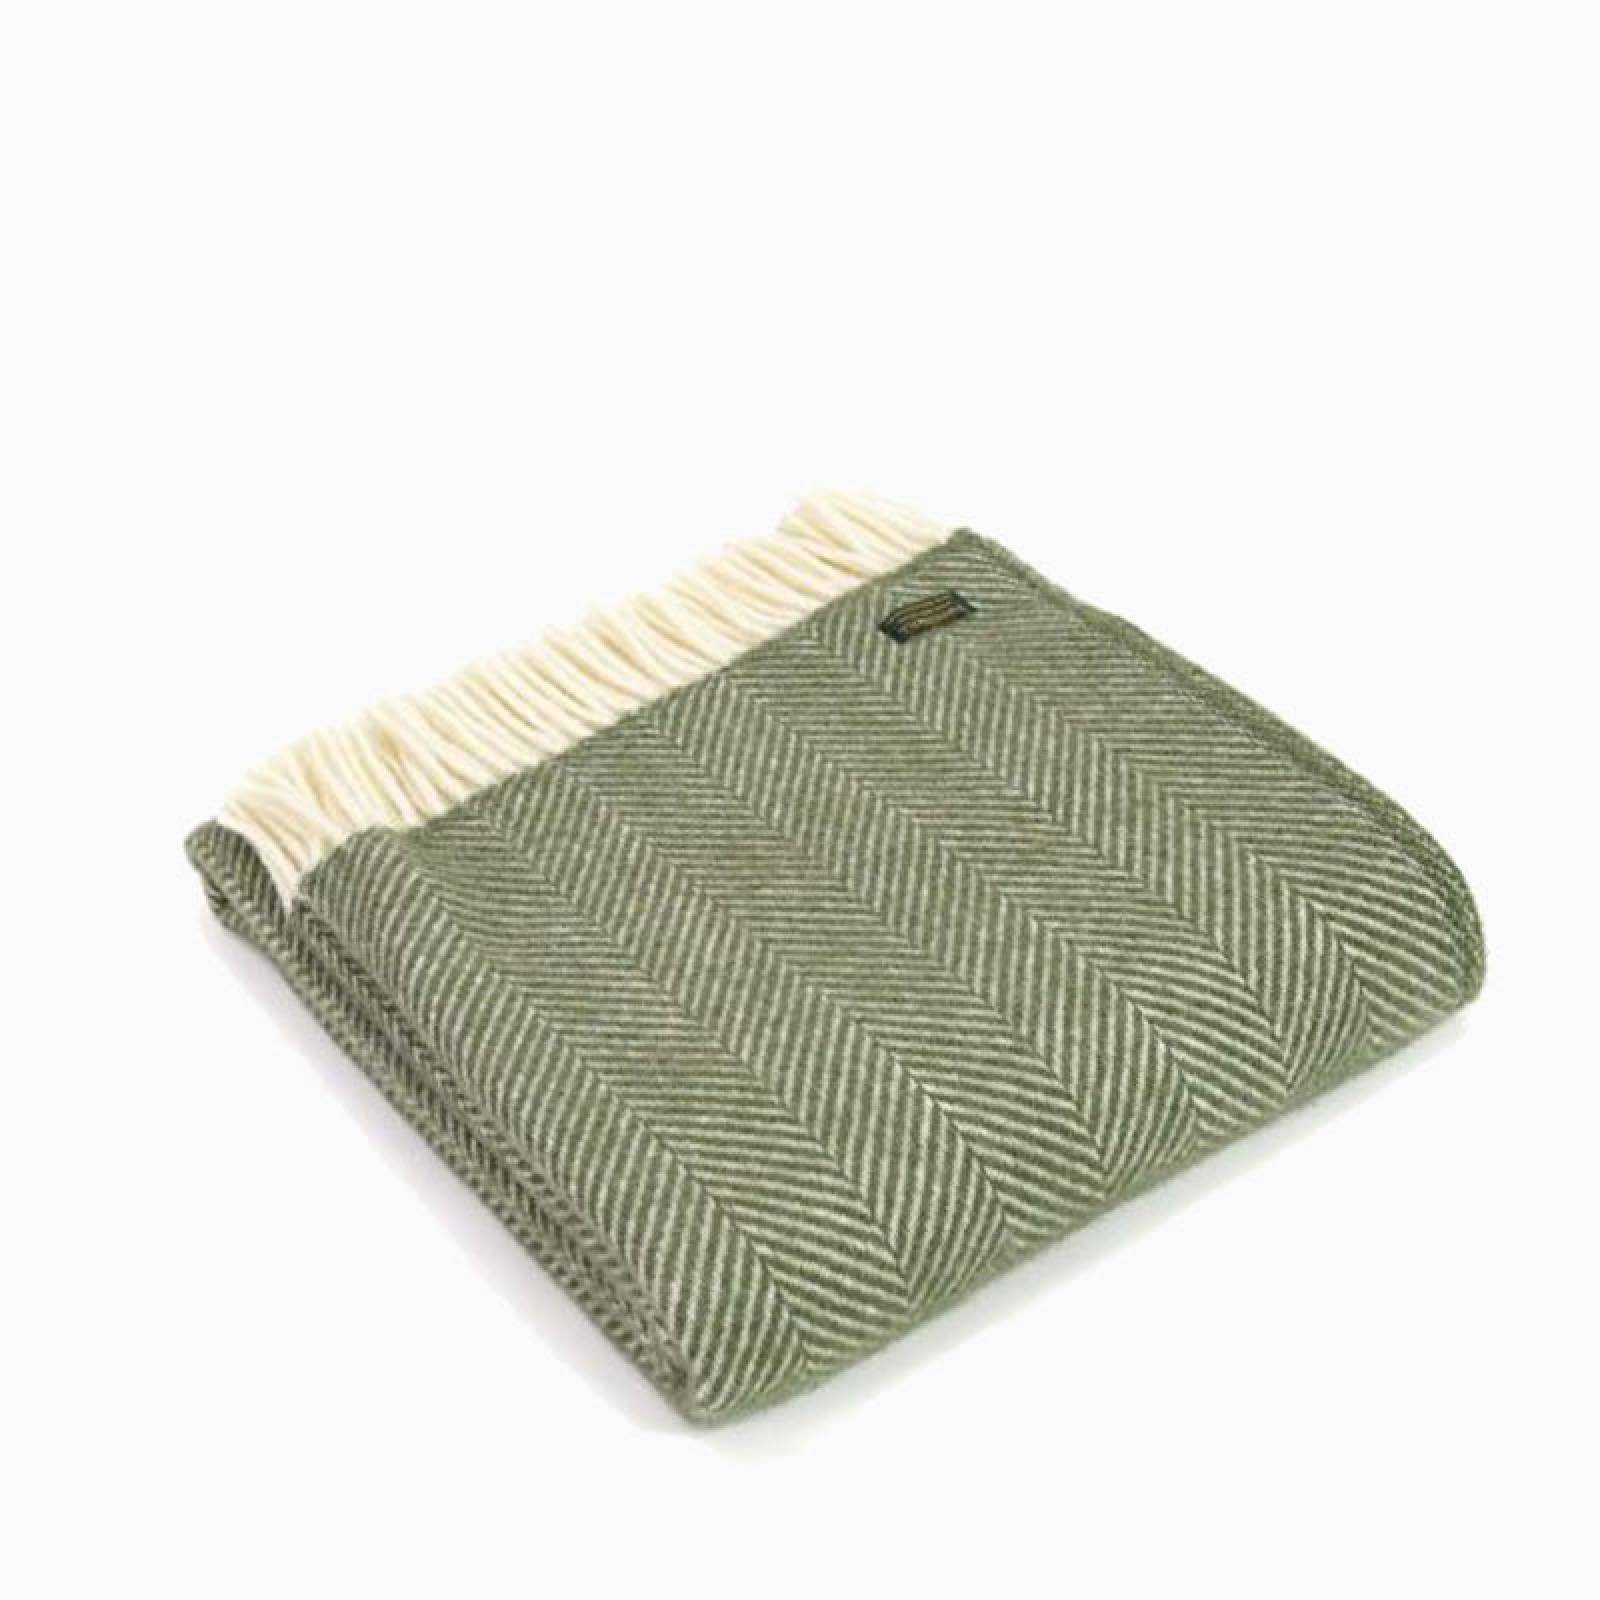 Fishbone Olive Wool Throw 70x183cm